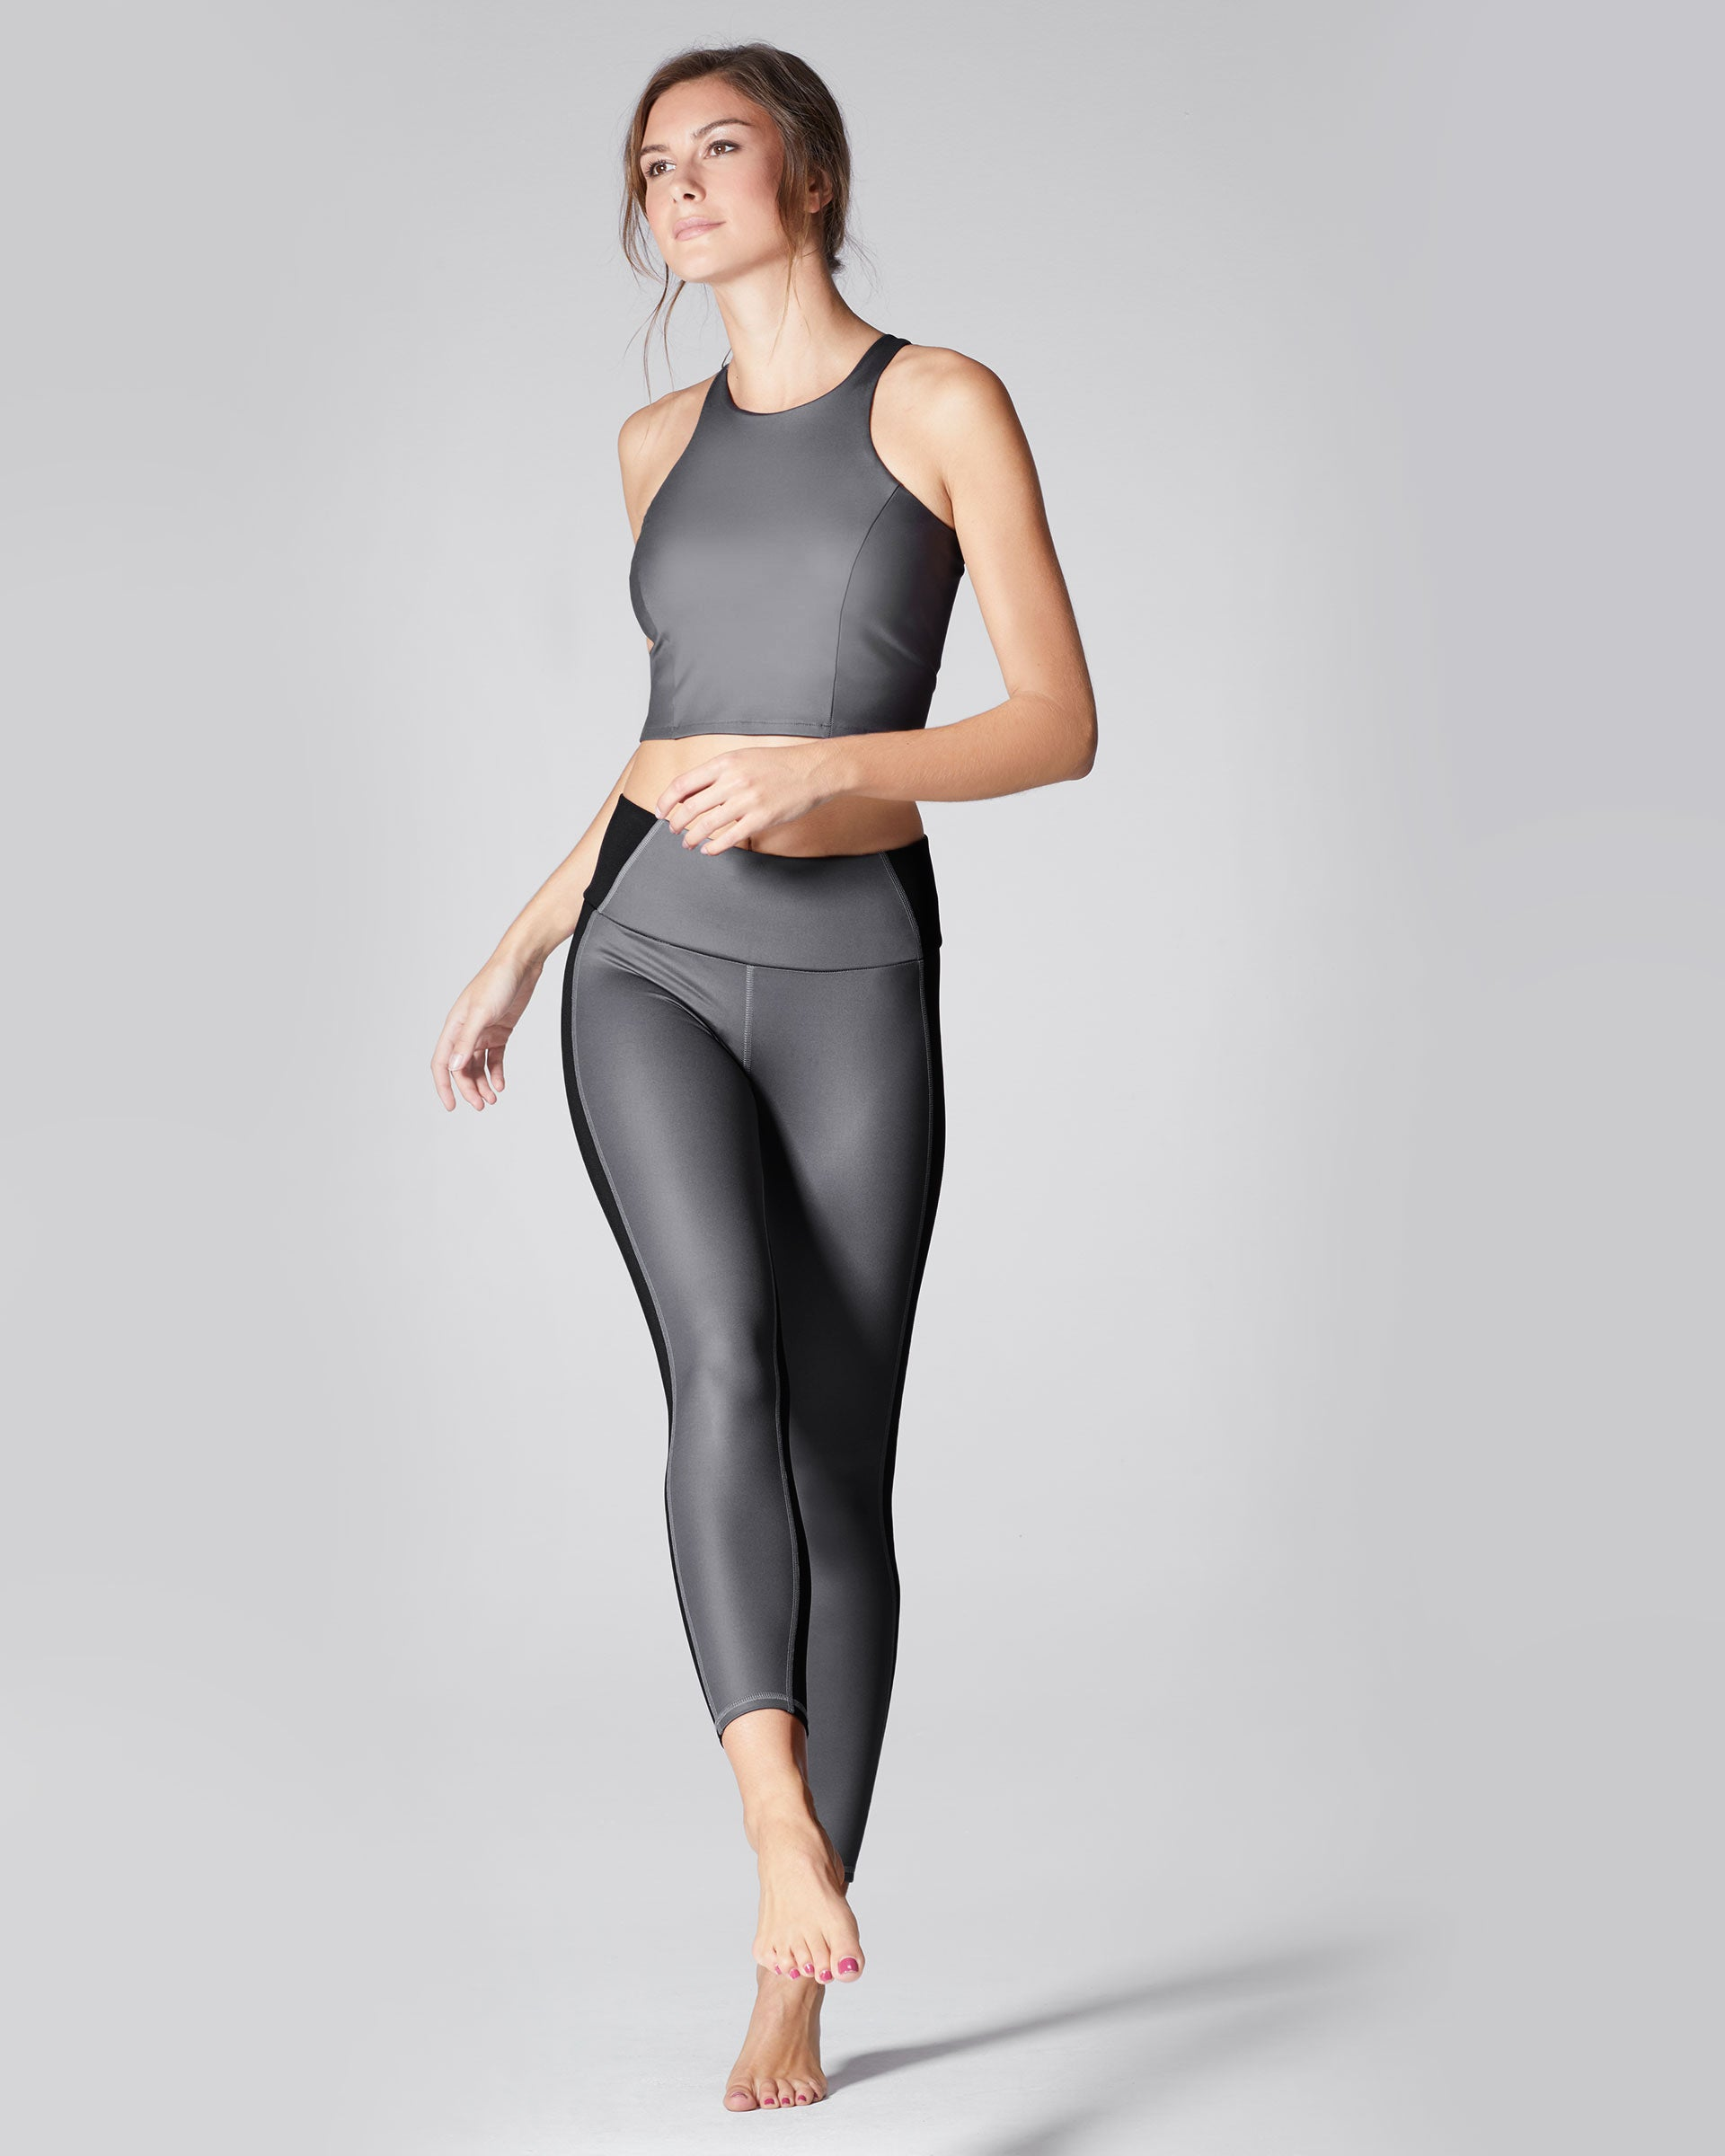 Vibe High Waisted Legging - Gunmetal/Black